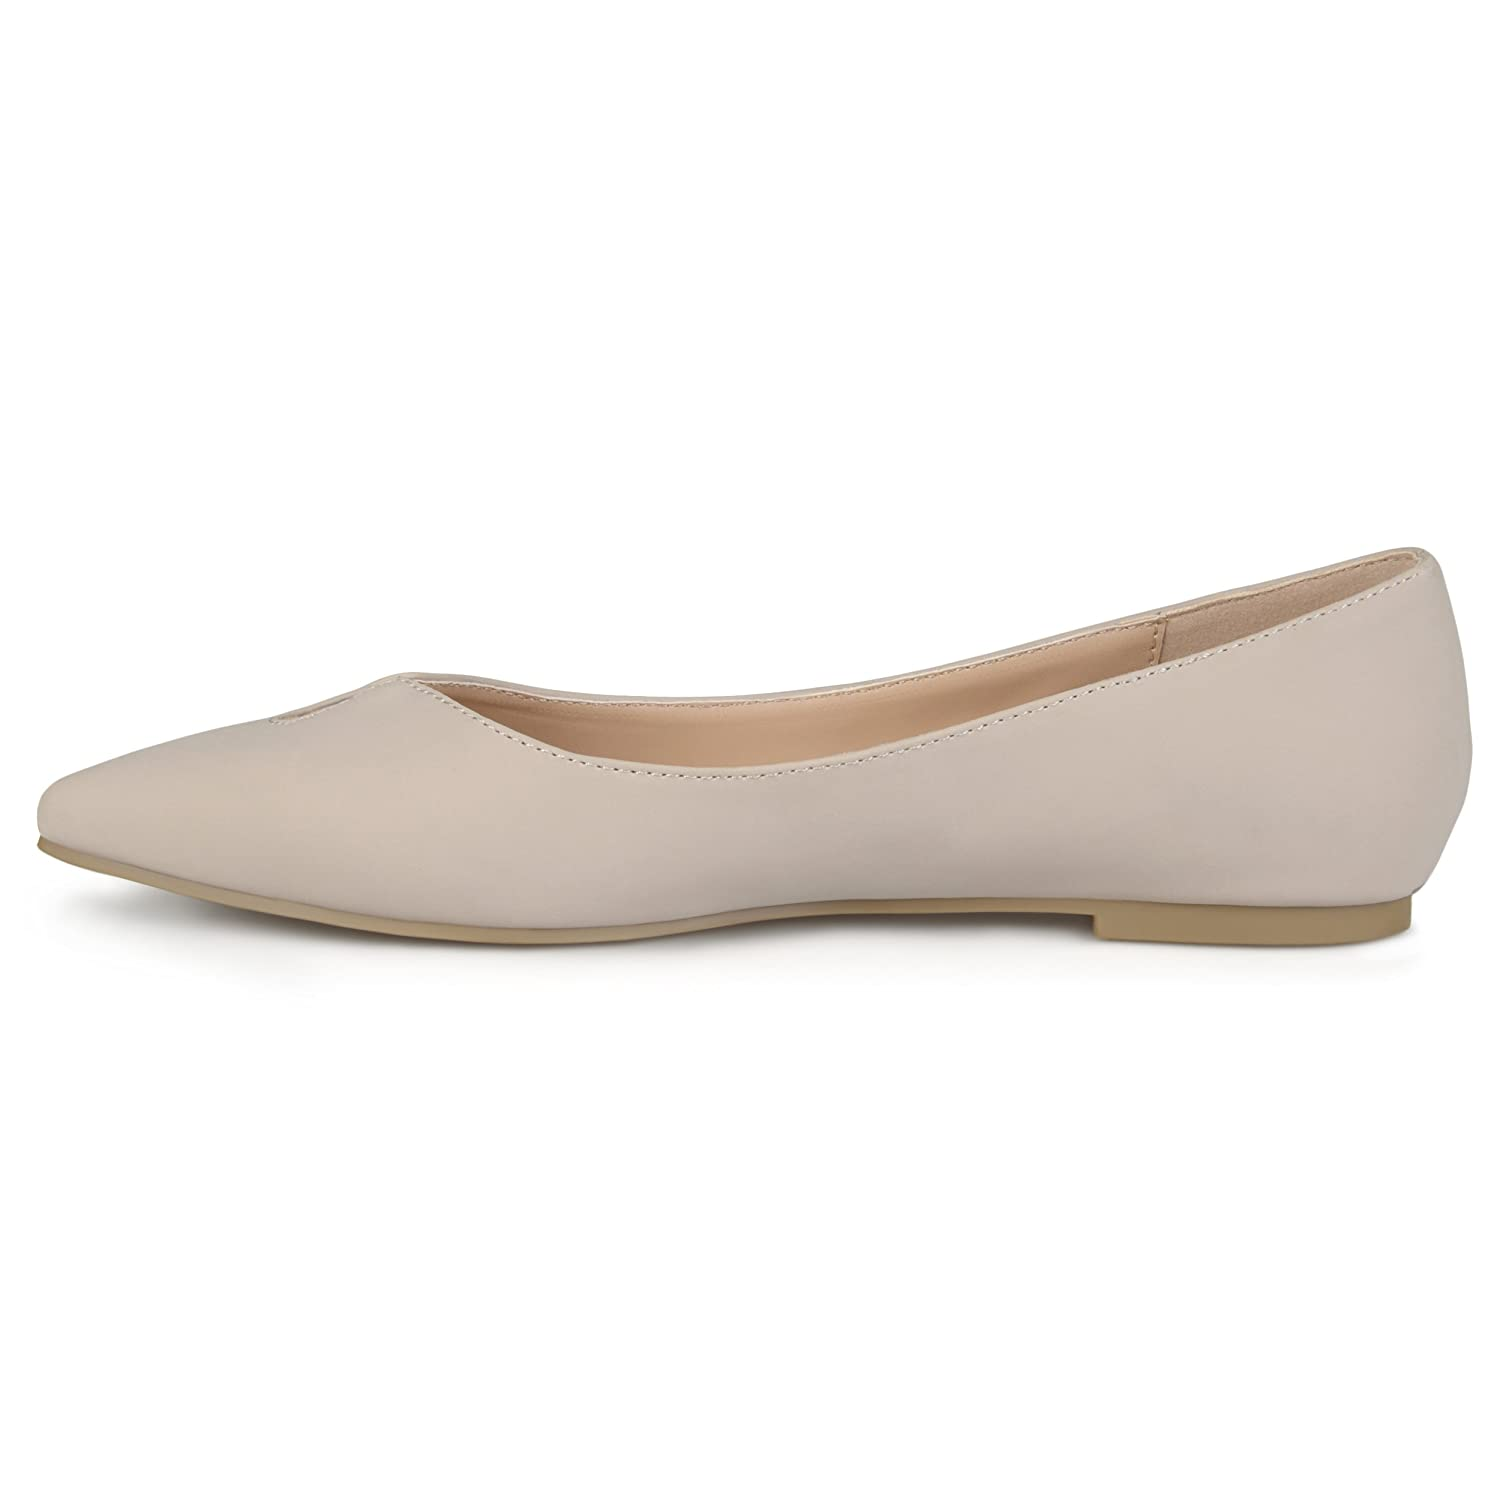 Brinley Co Women's Henna Ballet US|Taupe Flat B01MXLRXD7 8 B(M) US|Taupe Ballet b047f2